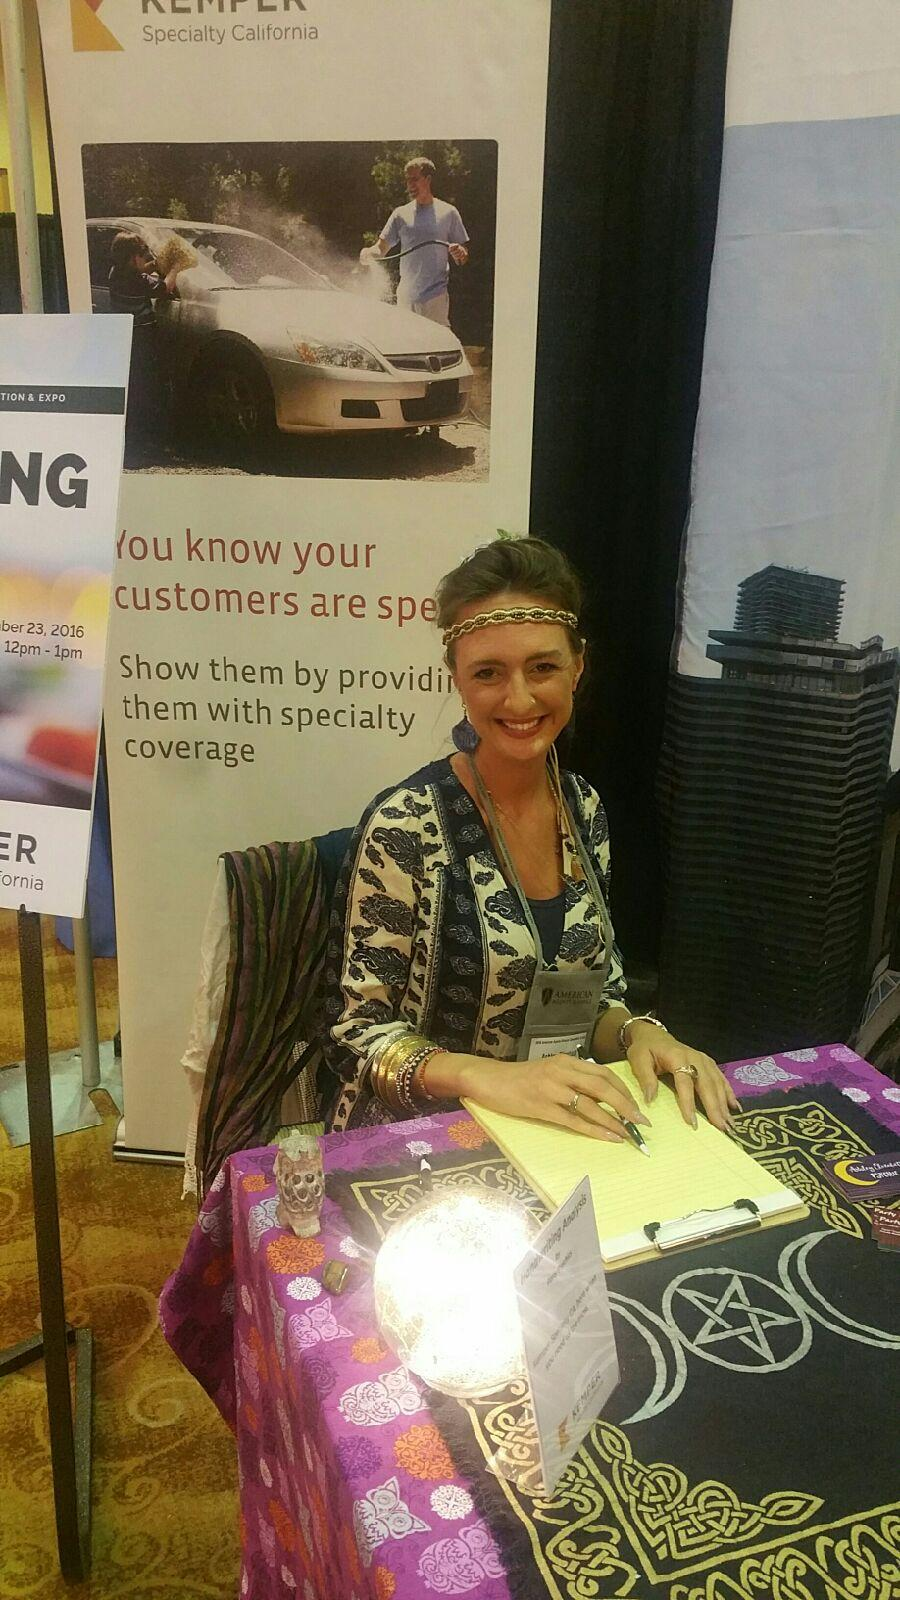 a smiling female psychic doing a handwriting analysis